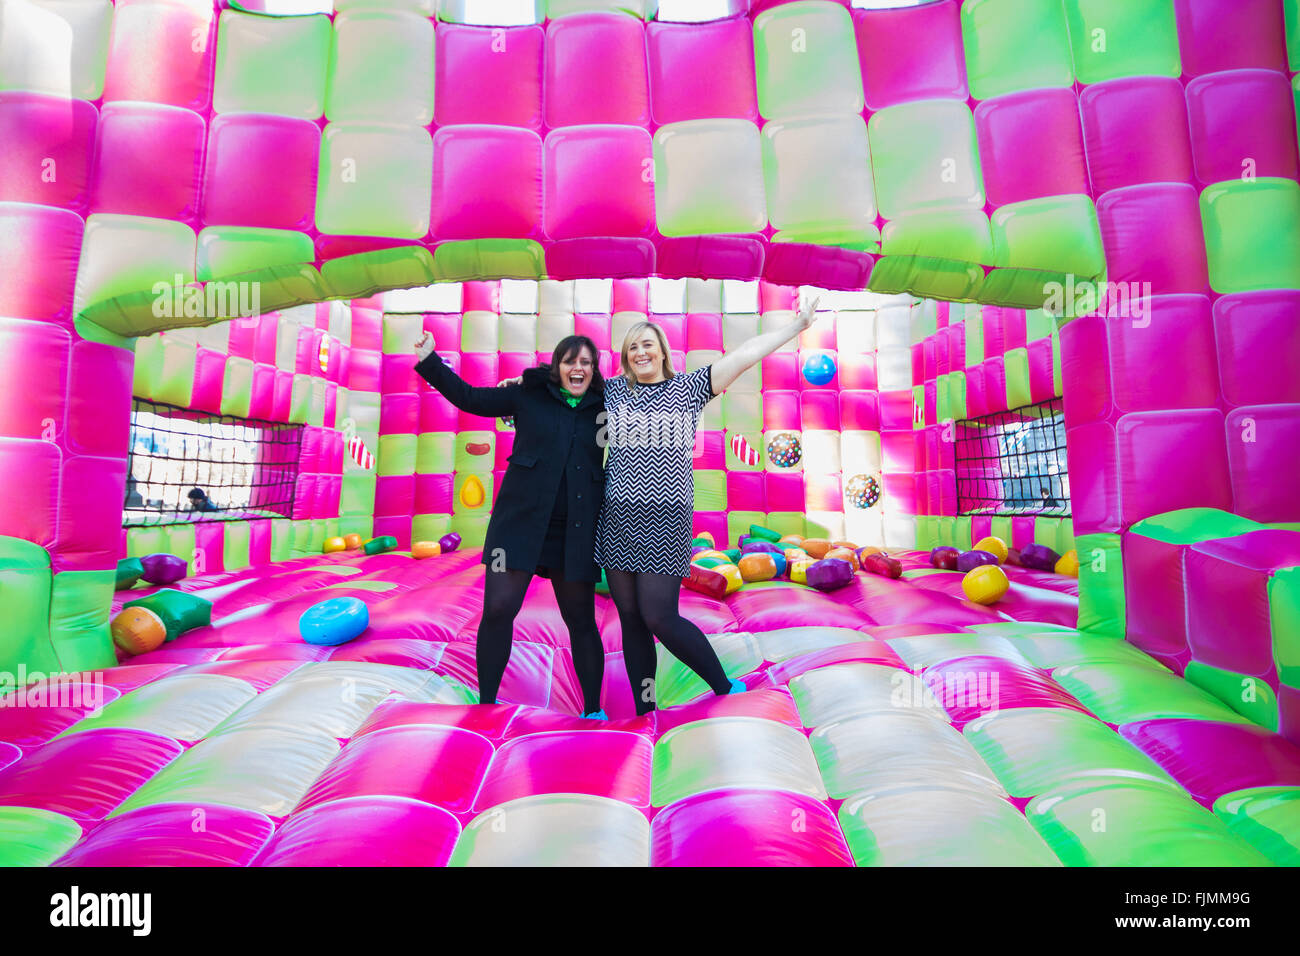 march 3rd 2016 a jelly themed adults only bouncy castle which has been created to celebrate the launch of candy crush jelly saga opens on londons